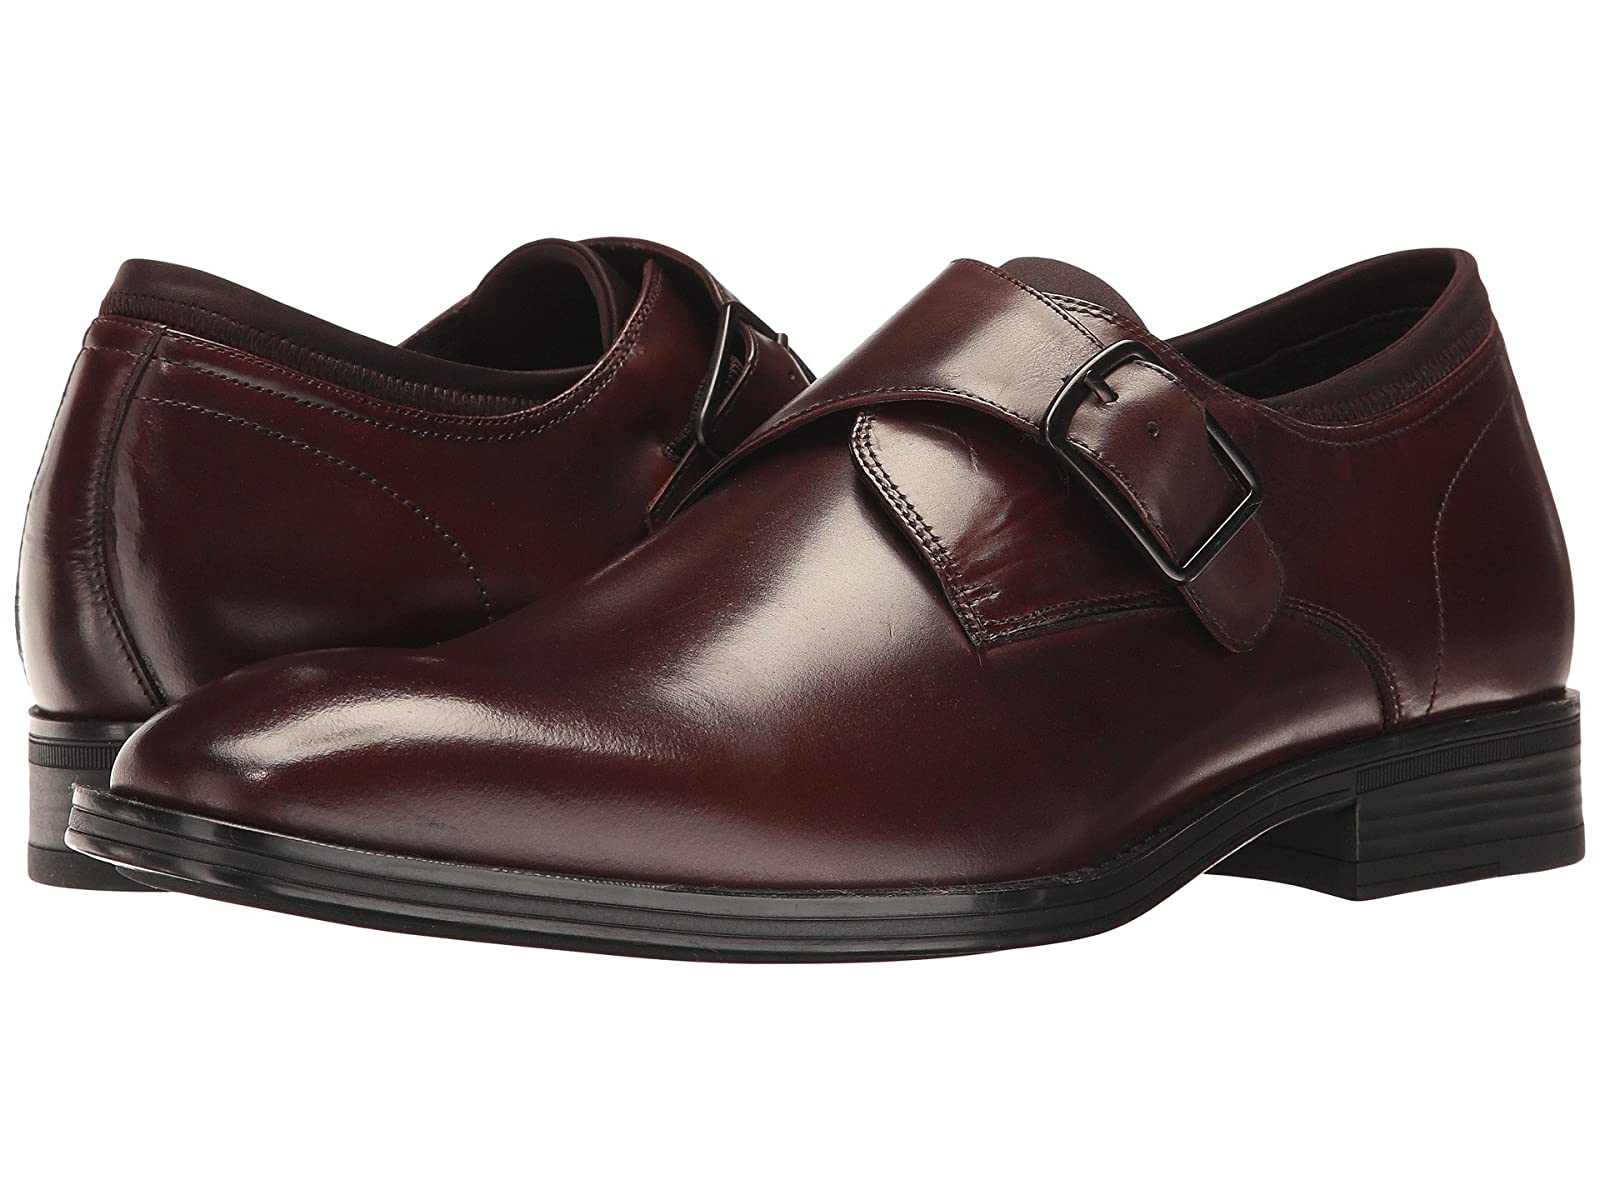 Kenneth Cole New York Shock WaveCheap and distinctive eye-catching shoes